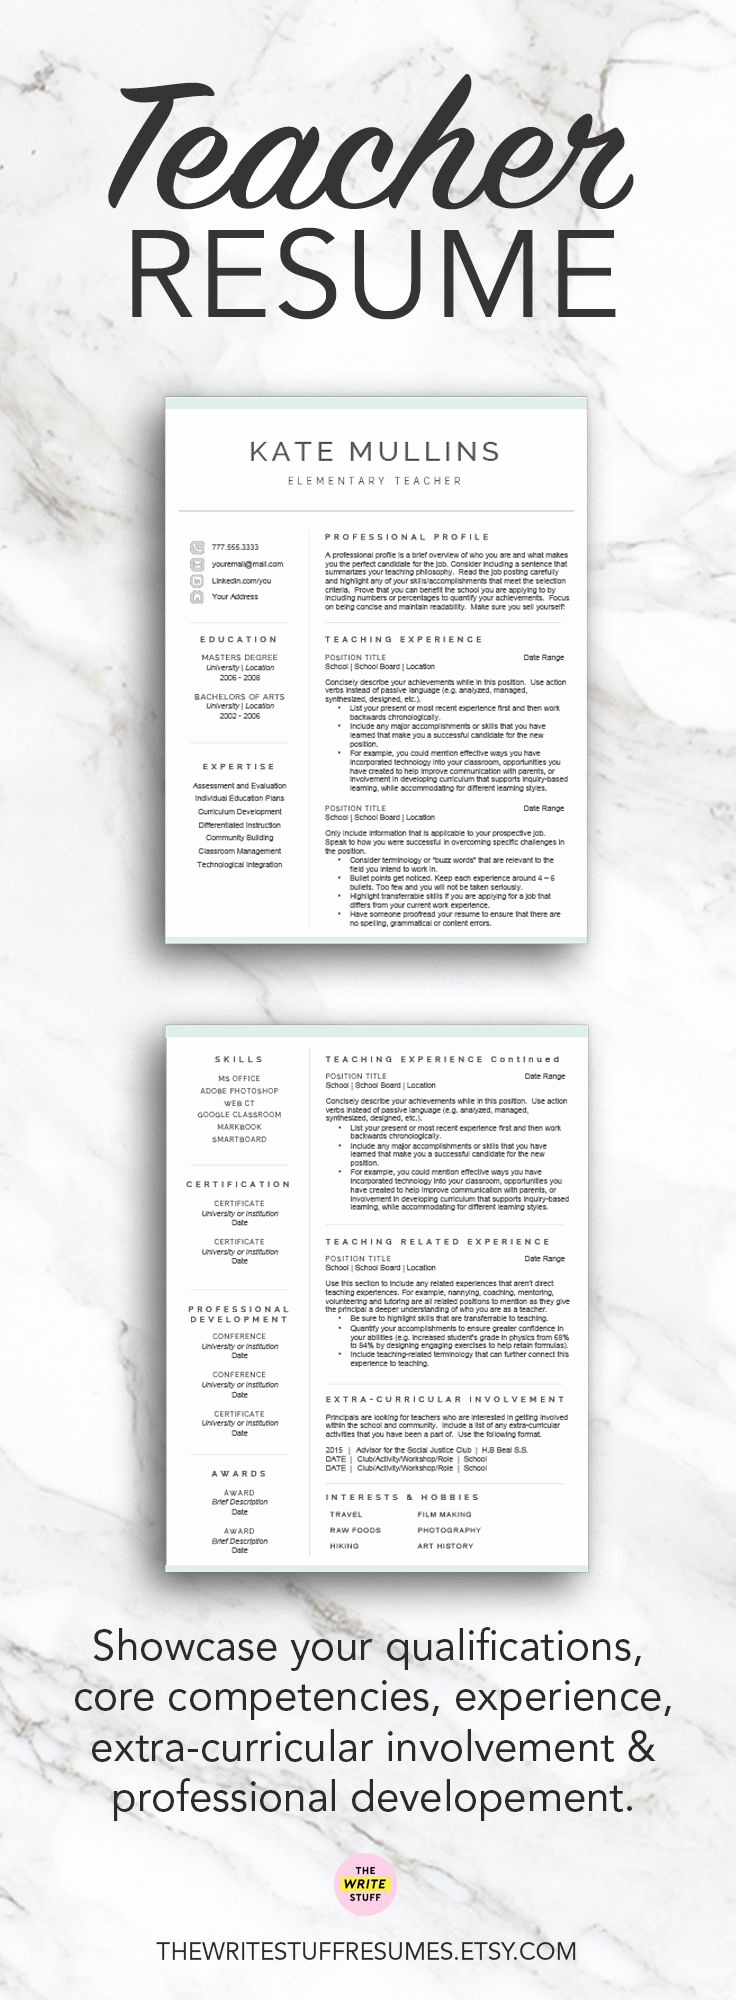 Resume Cover Letter Template Word Inspirational Best 25 Teacher Resume Template Ideas On Pinterest